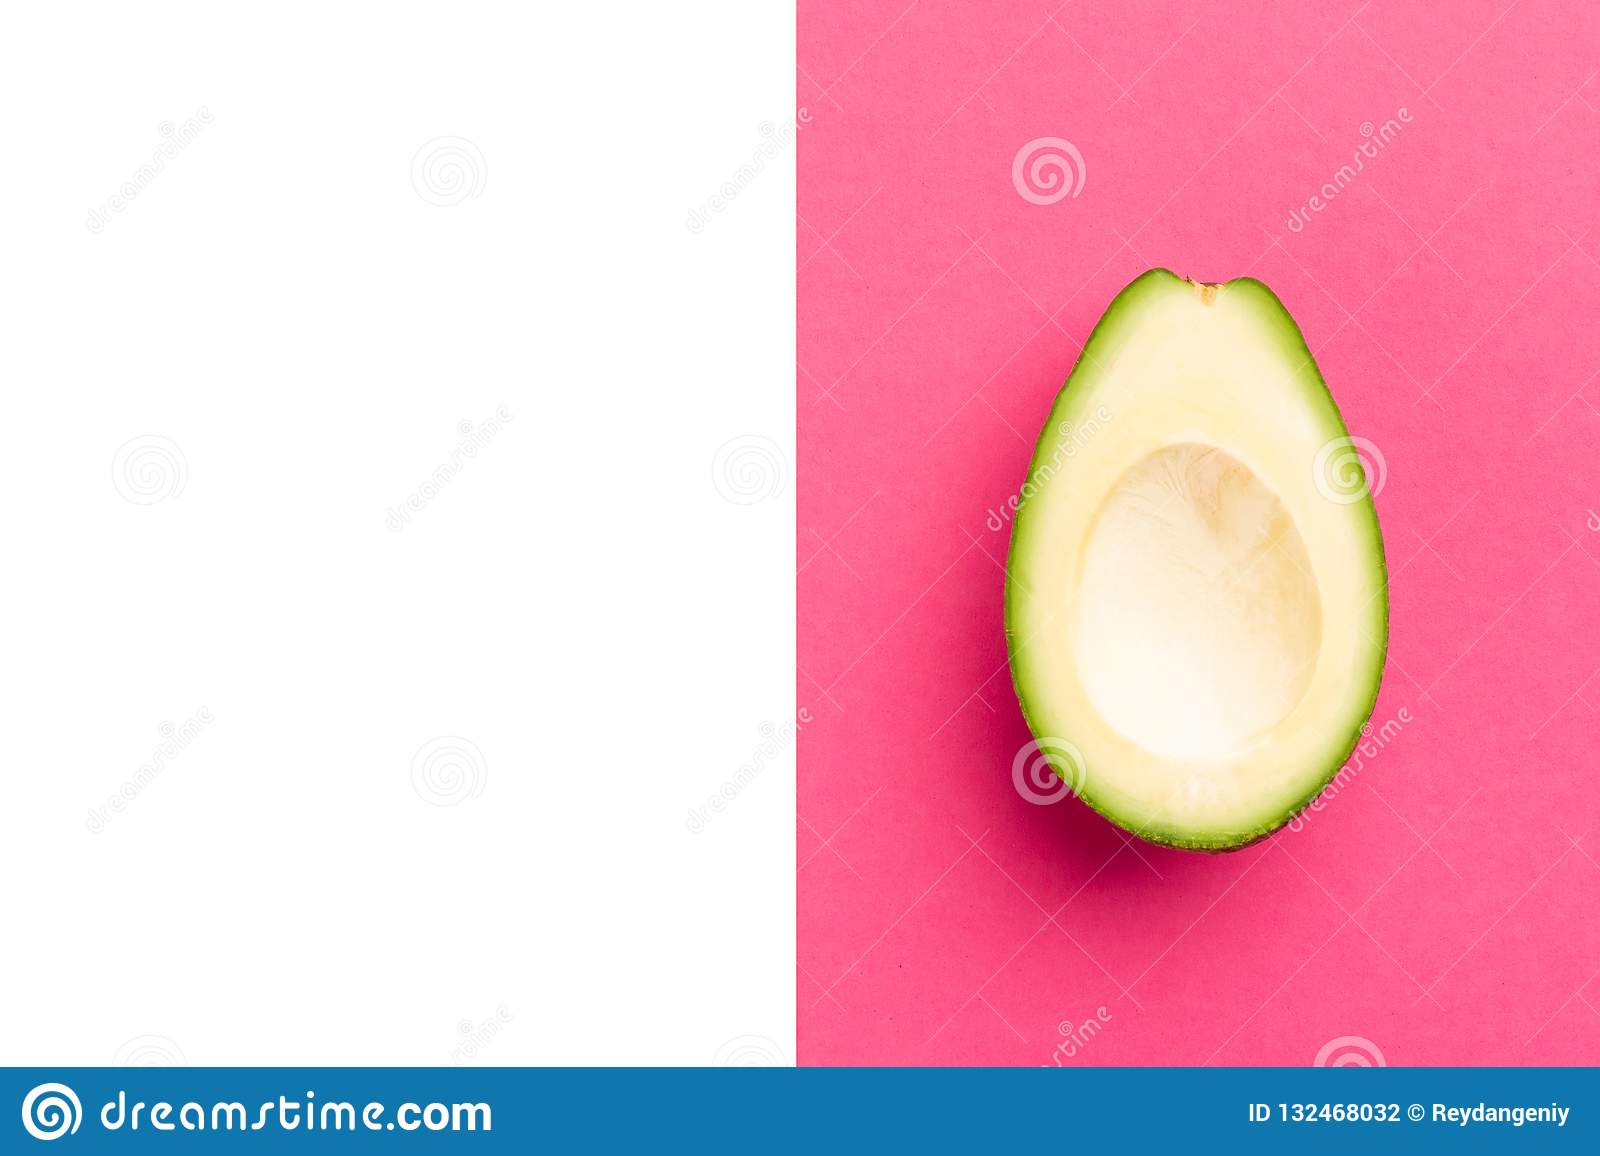 Ripe fresh cut pitted avocado fruit close-up on a pink